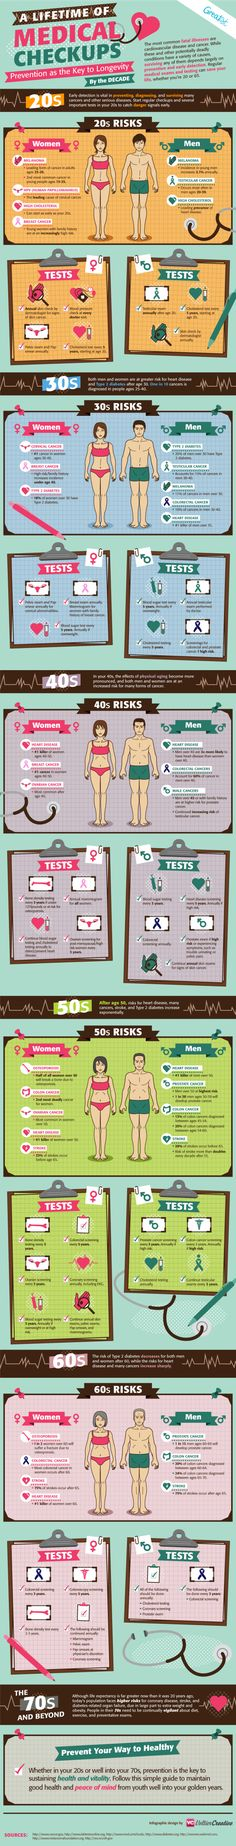 A Lifetime of Medical Checkups infographic.   À comparer avec les recommandations HAS et WHO.